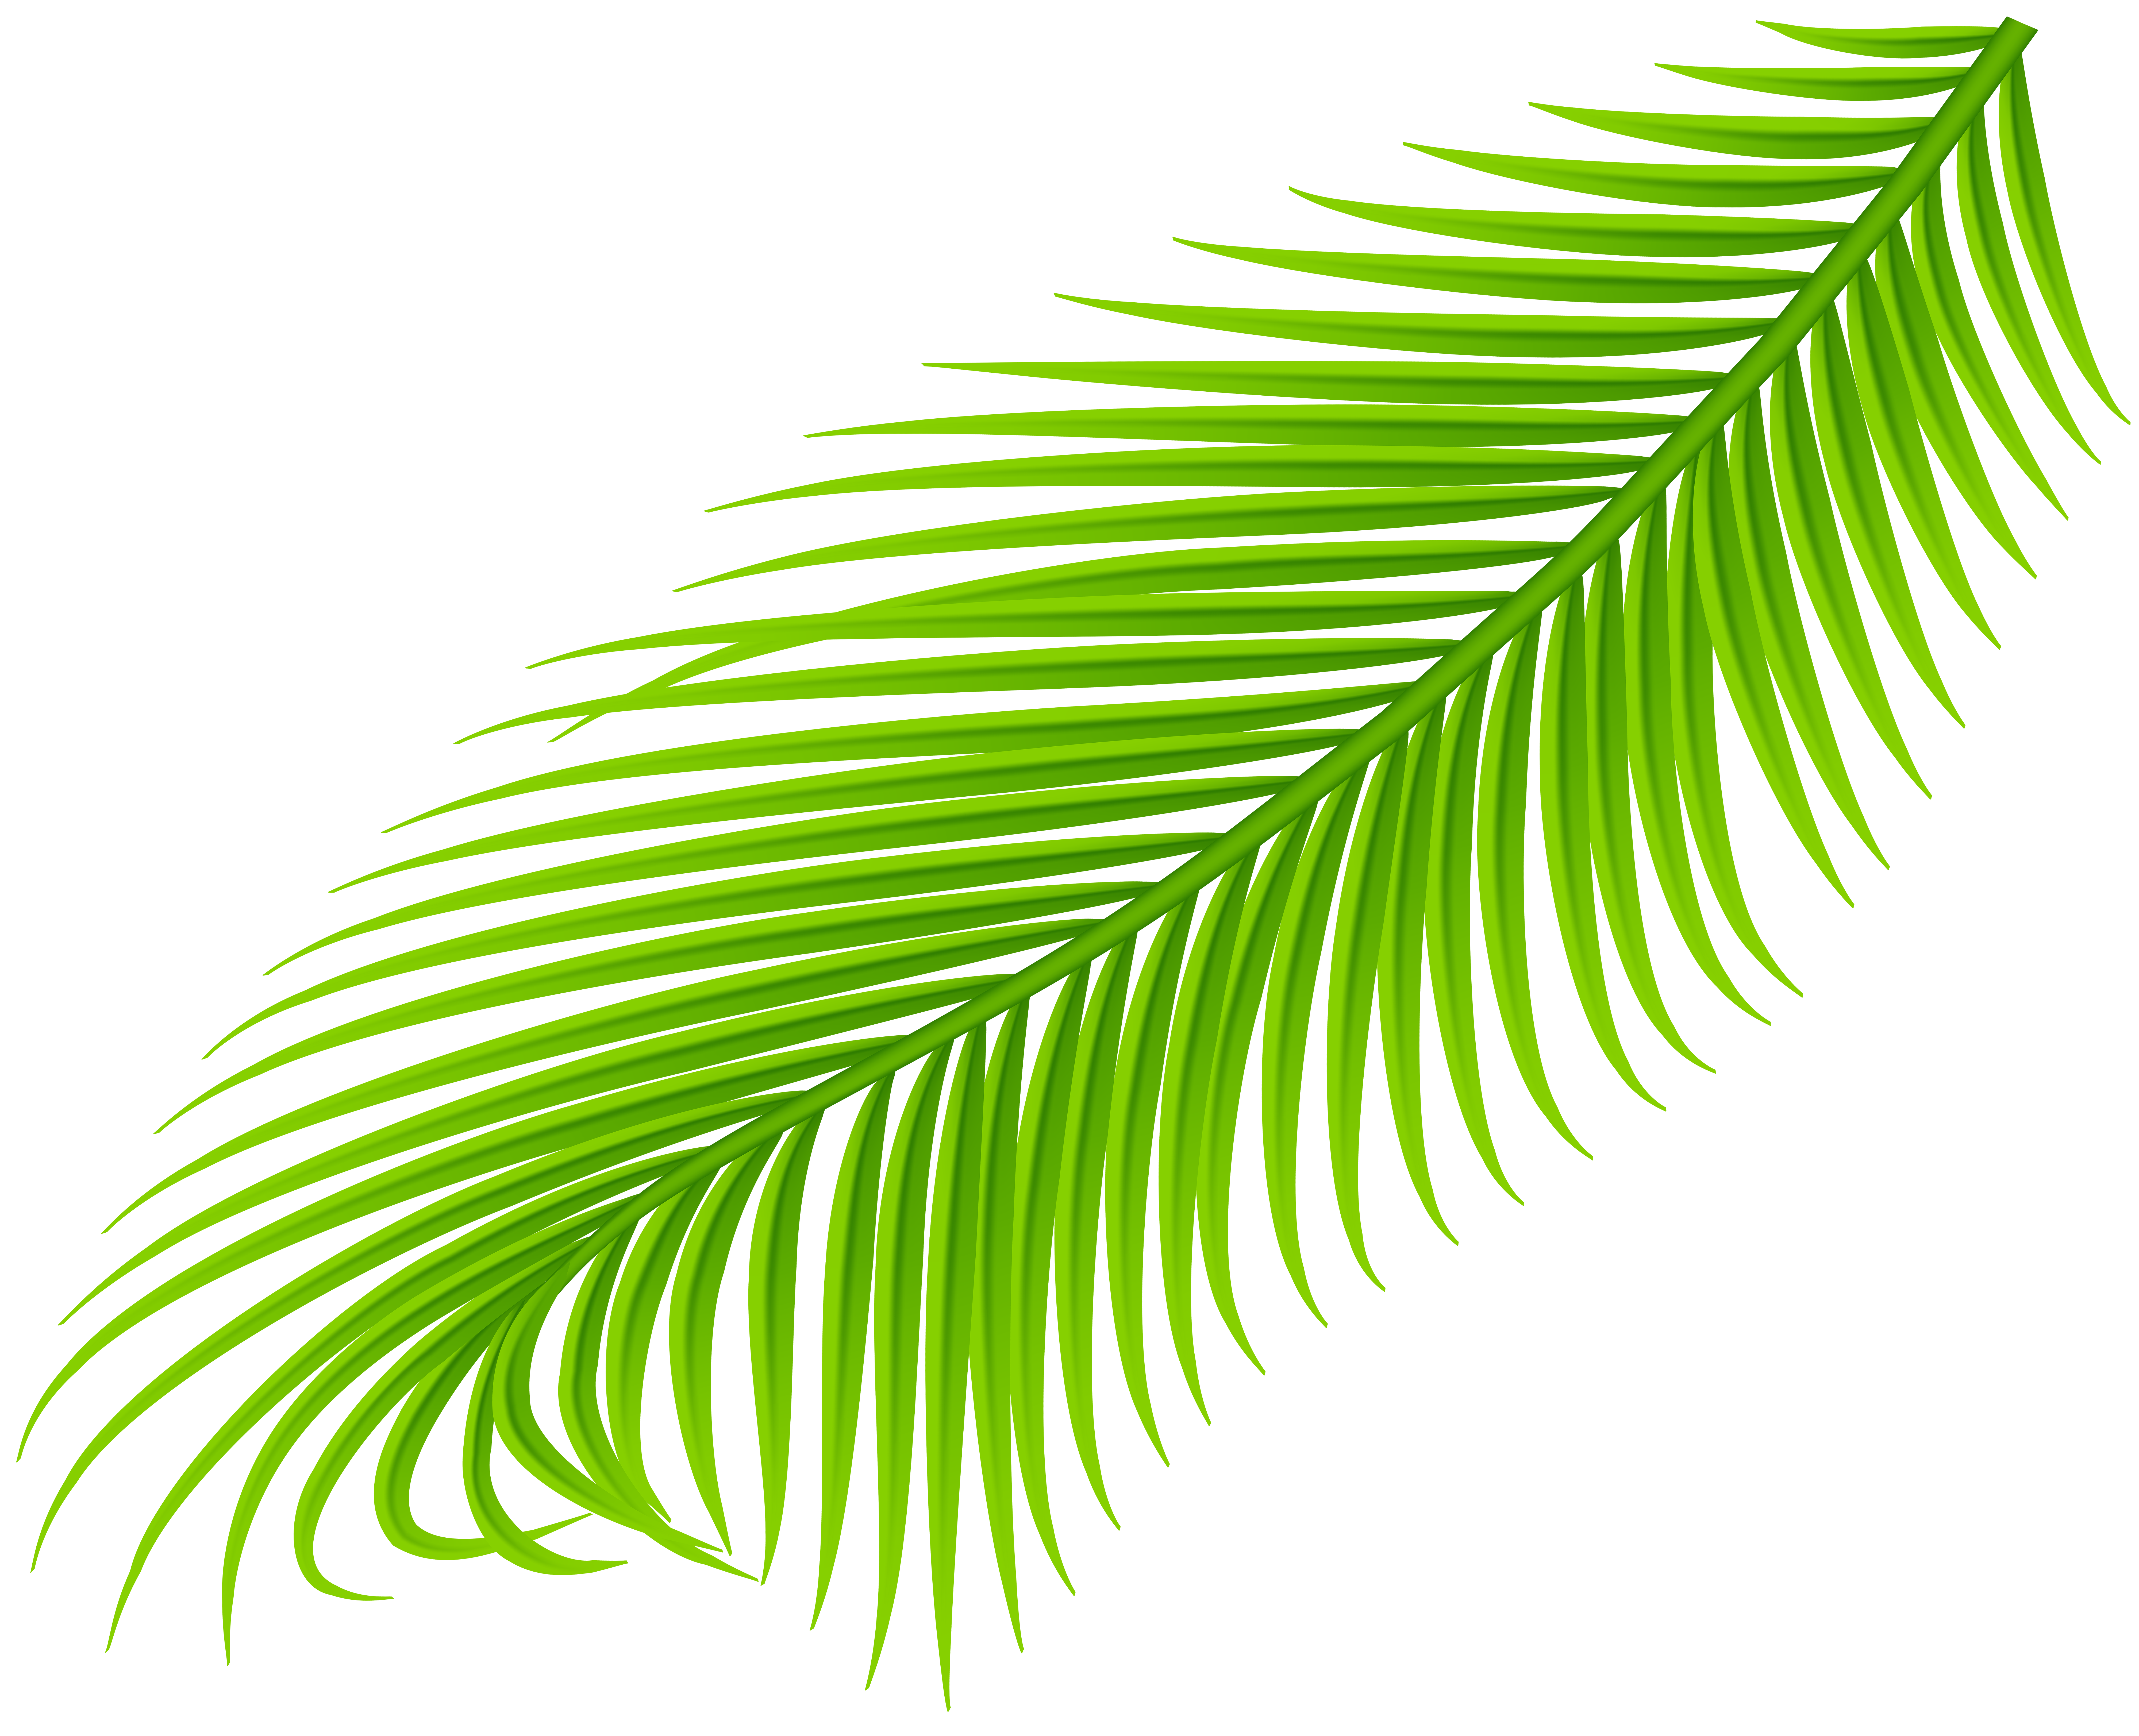 Palm branch png. Transparent clip art gallery